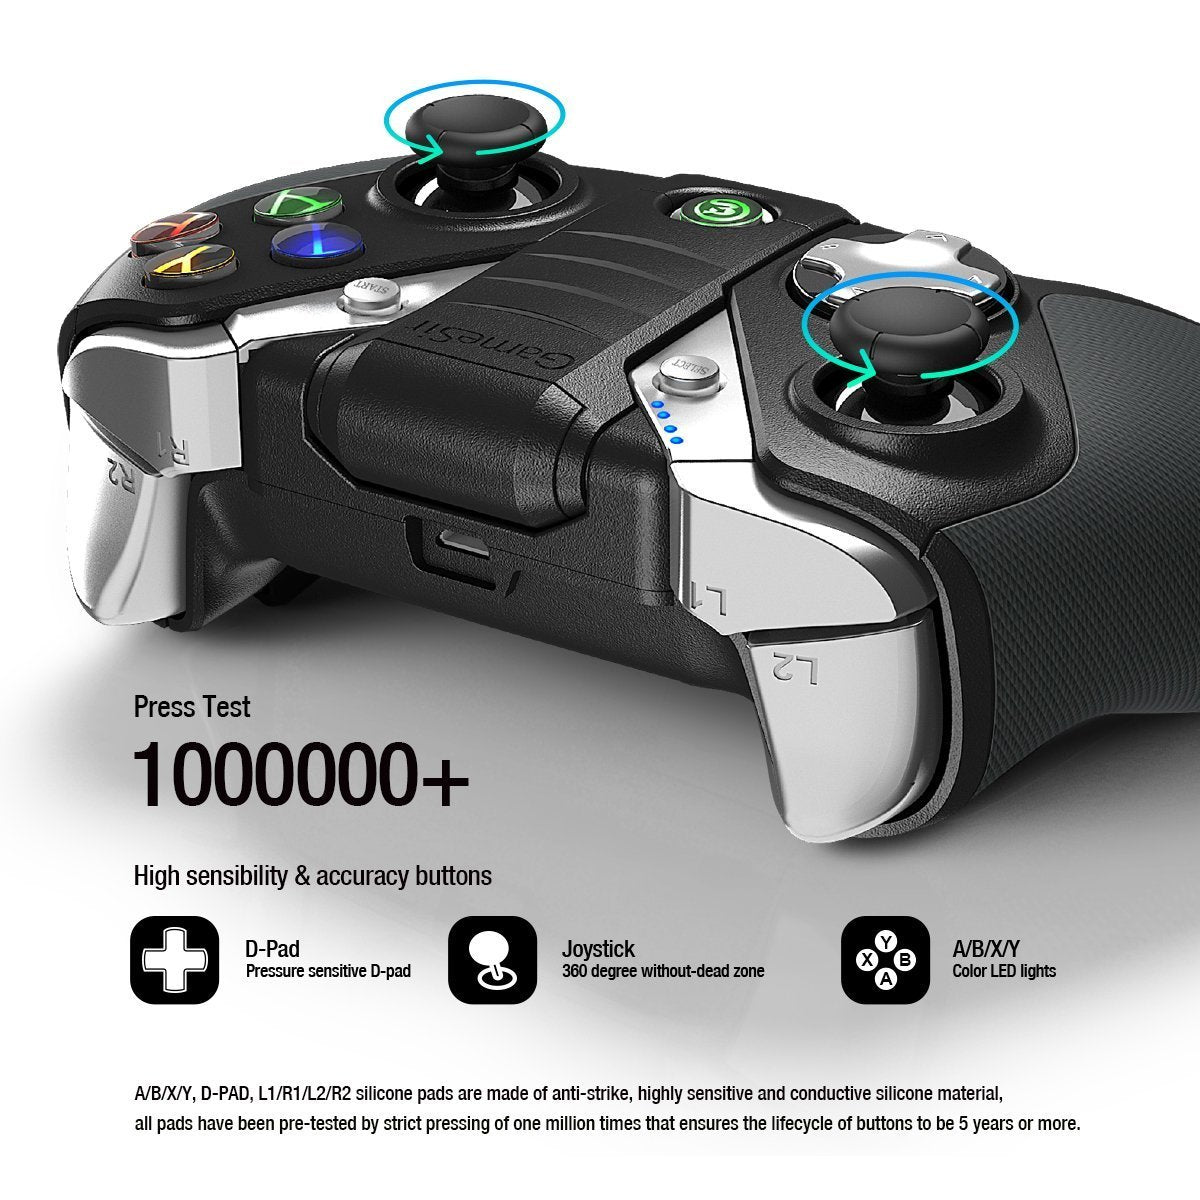 GameSir G4s Bluetooth Gaming Controller 2.4G Wireless Gamepad for Smartphone/ PC/ TV Box/ PS4/XBOX ONE